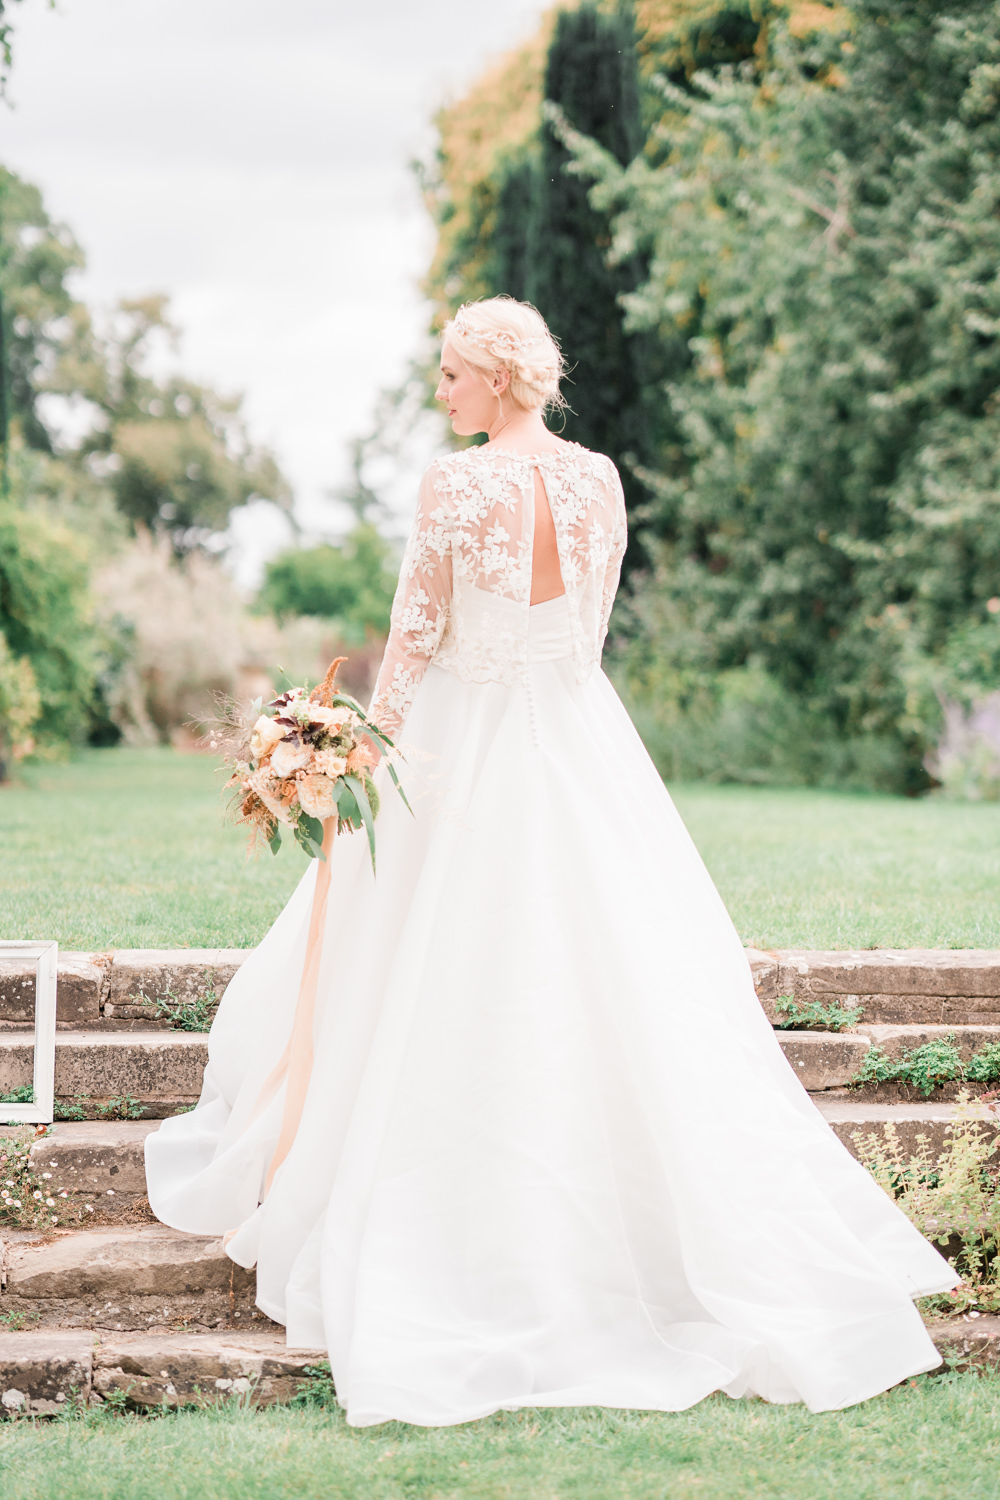 Dress Gown Silk Skirt Lace Top Train Straps Bride Bridal Golden Autumnal Wedding Ideas Joanna Briggs Photography